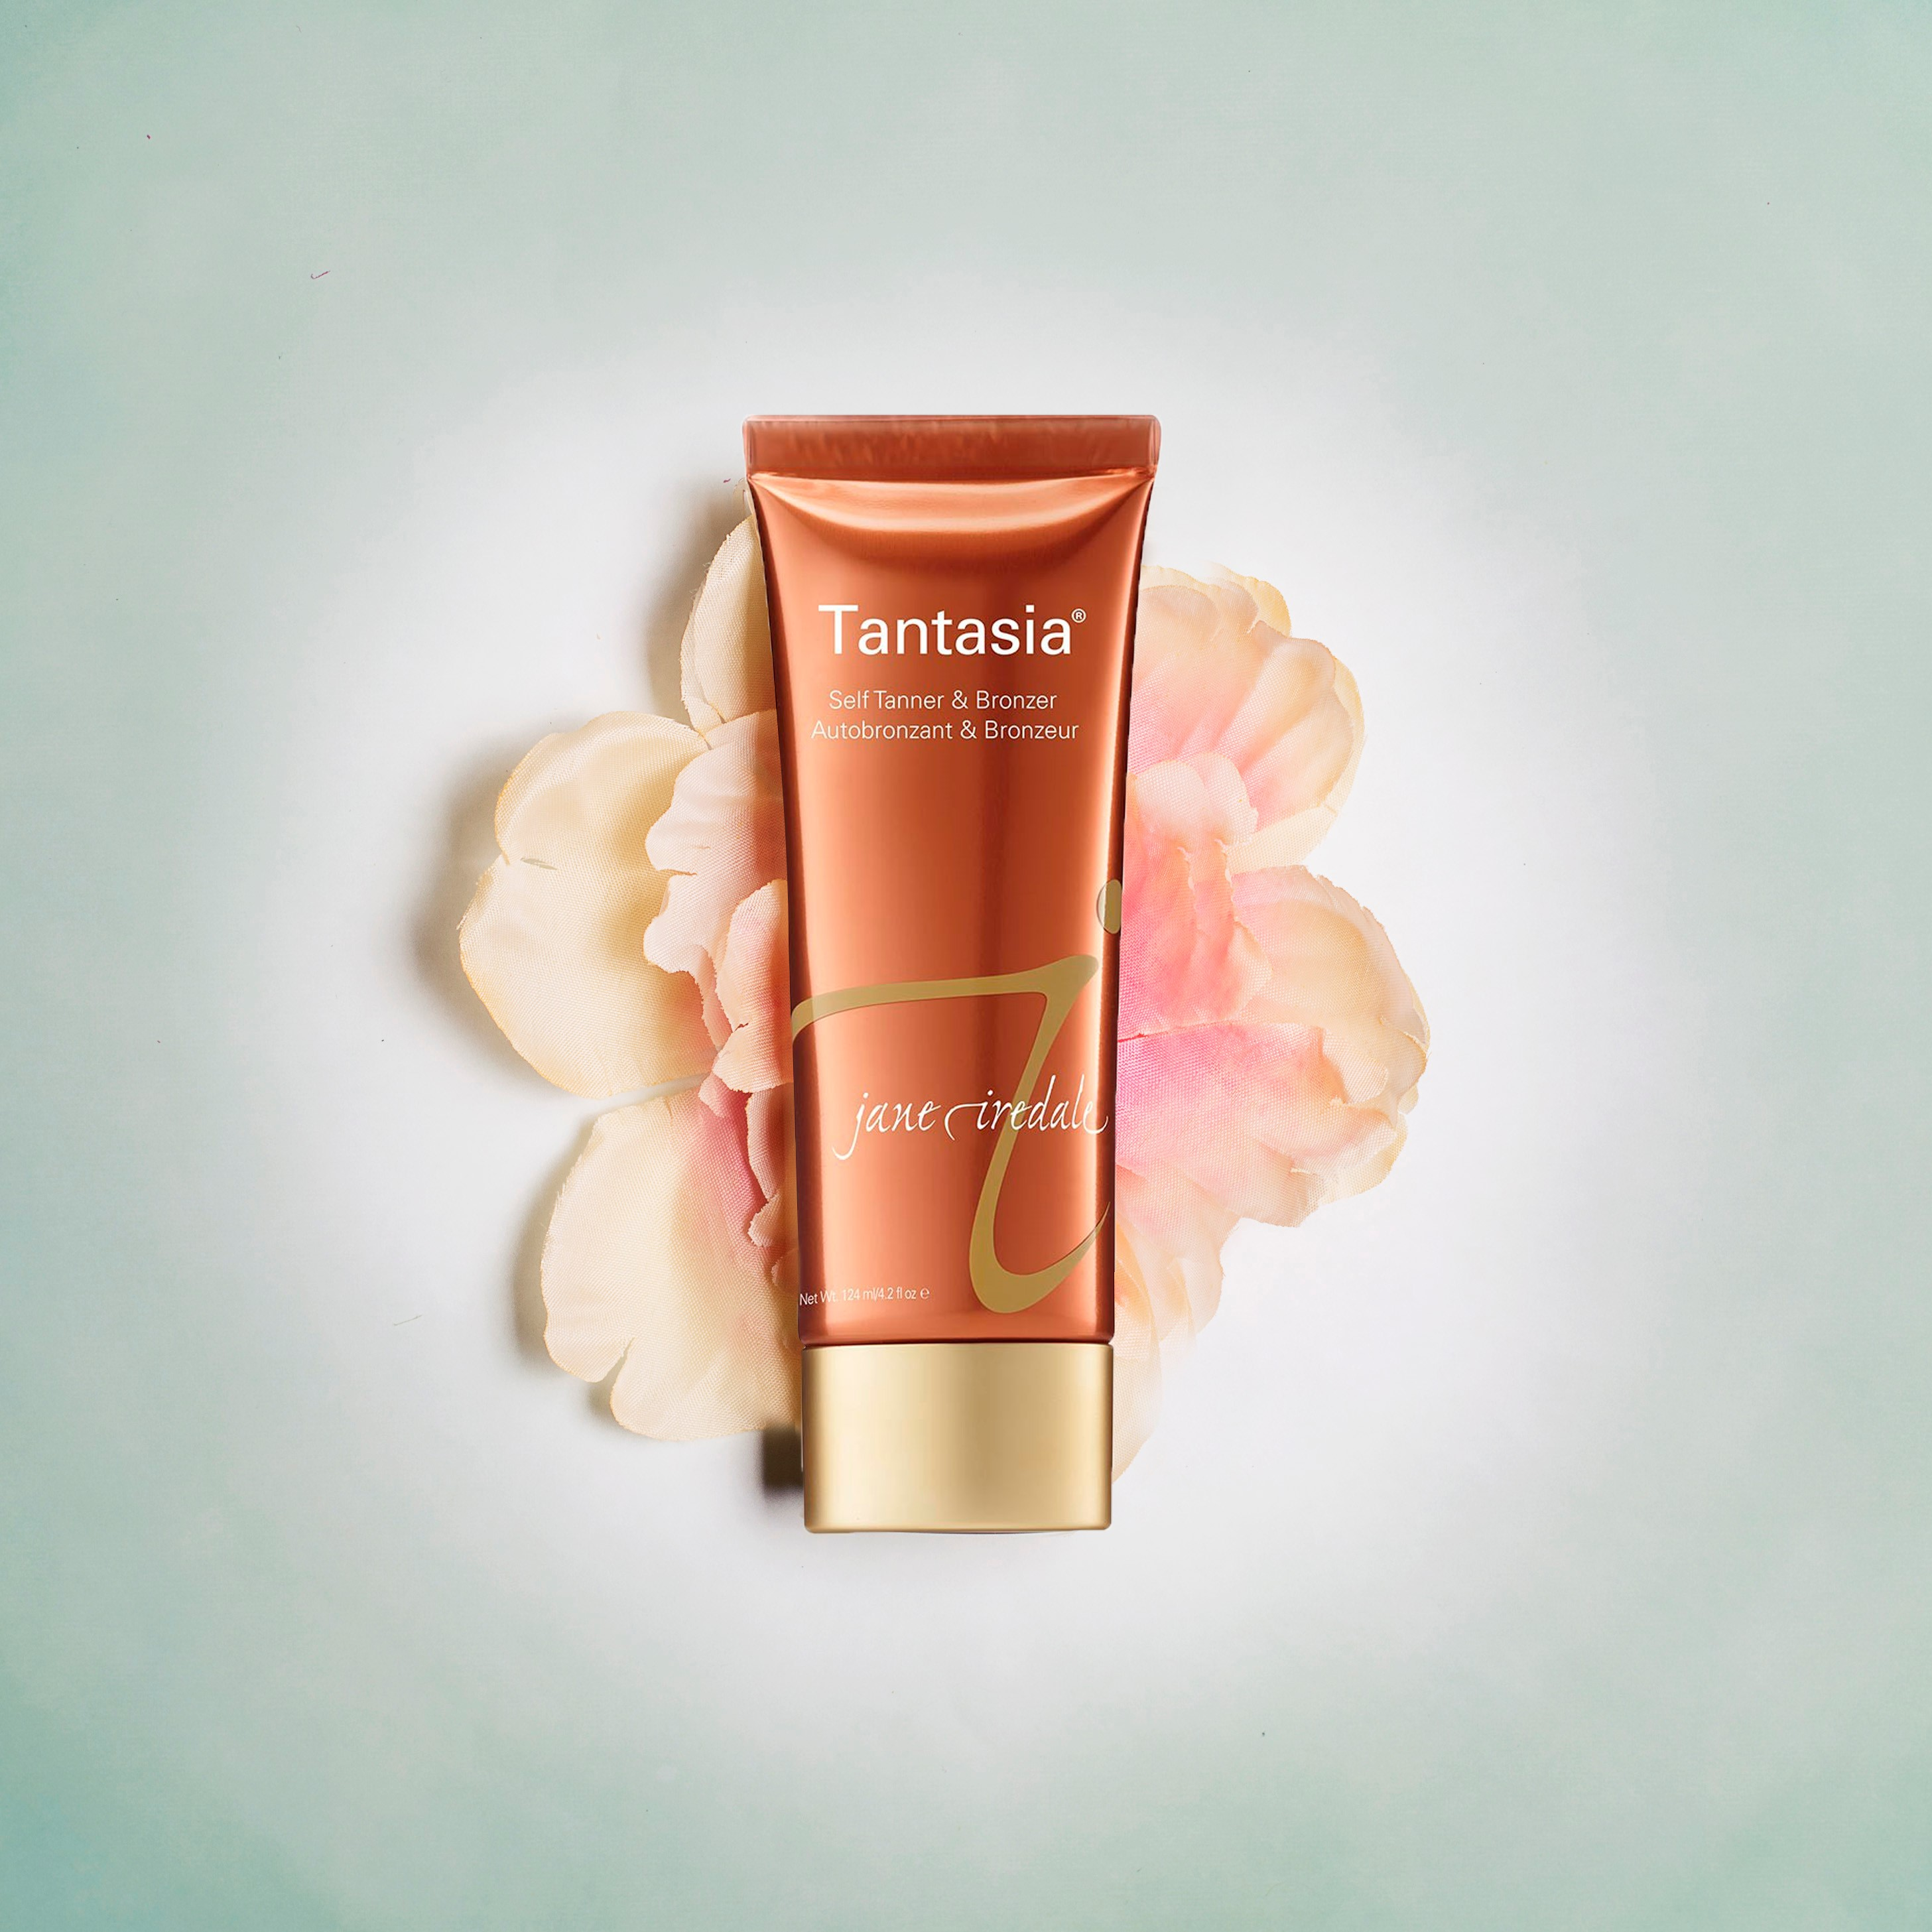 jane iredale Tantasia Self-Tanner & Bronzer